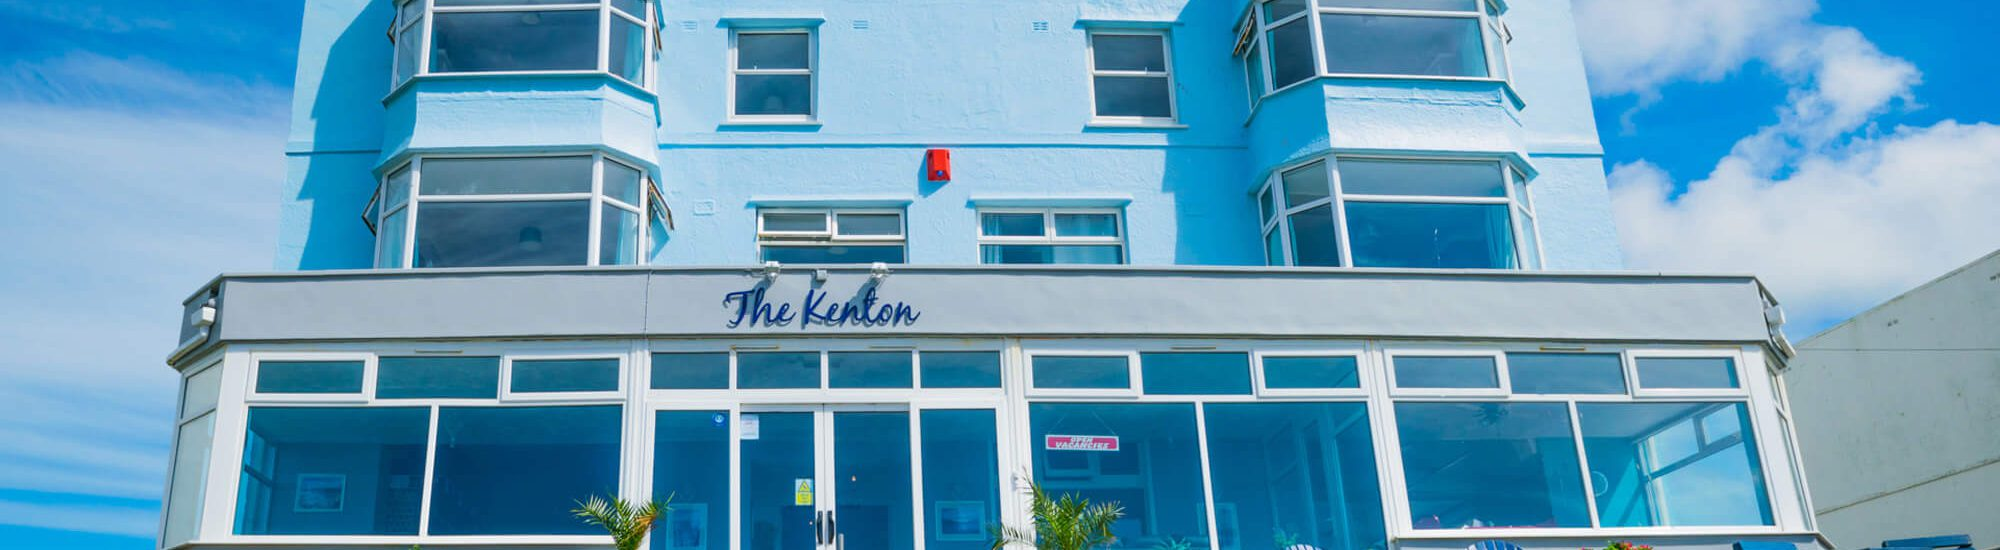 the kenton newquay 2000x550 - Contact